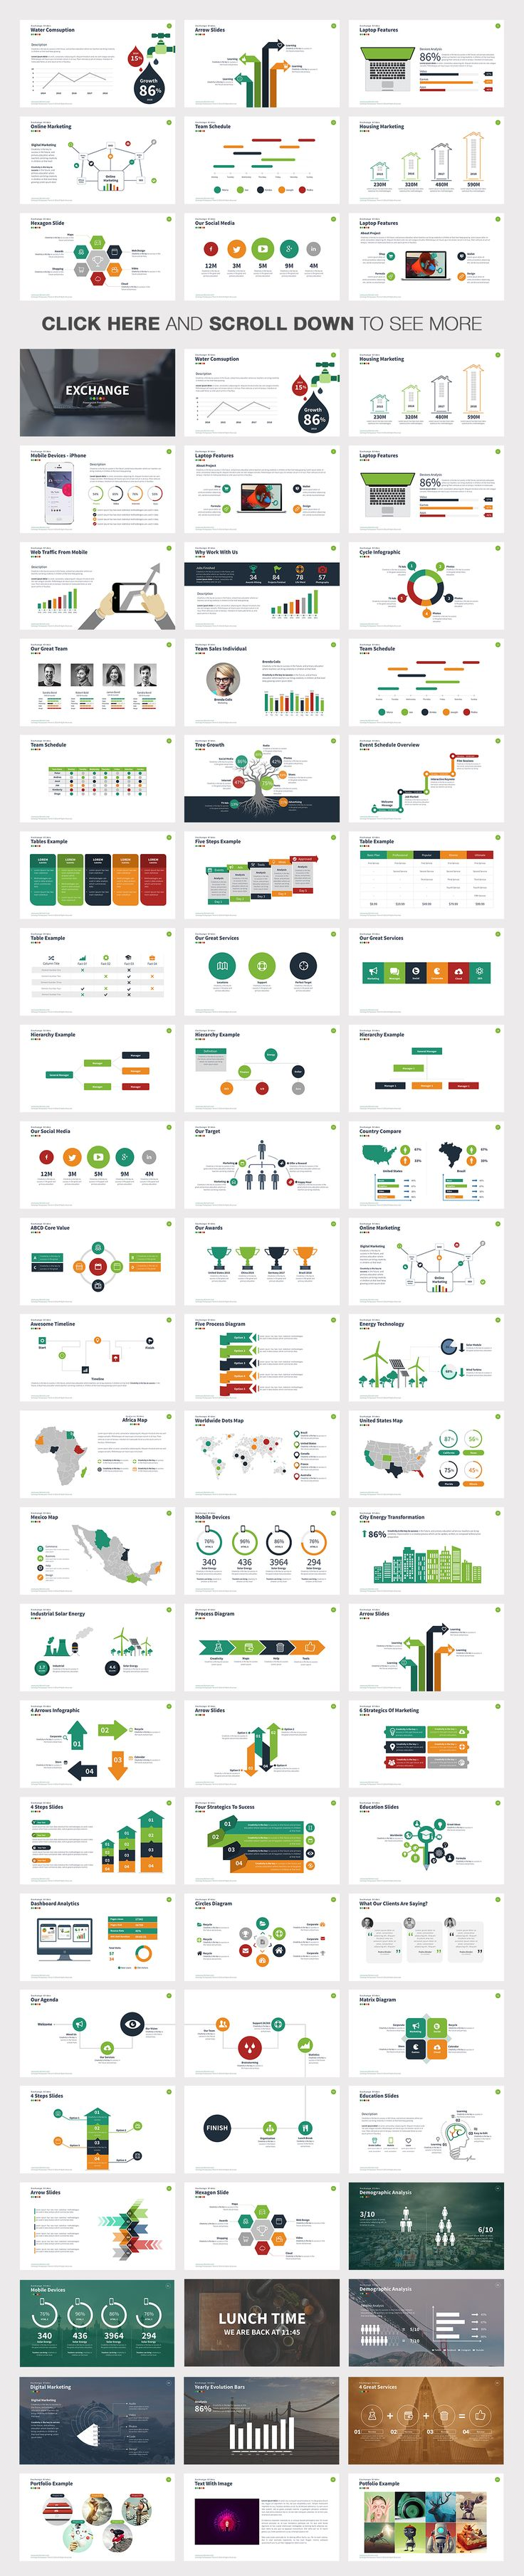 Exchange Powerpoint Template by Slidedizer on Creative Market